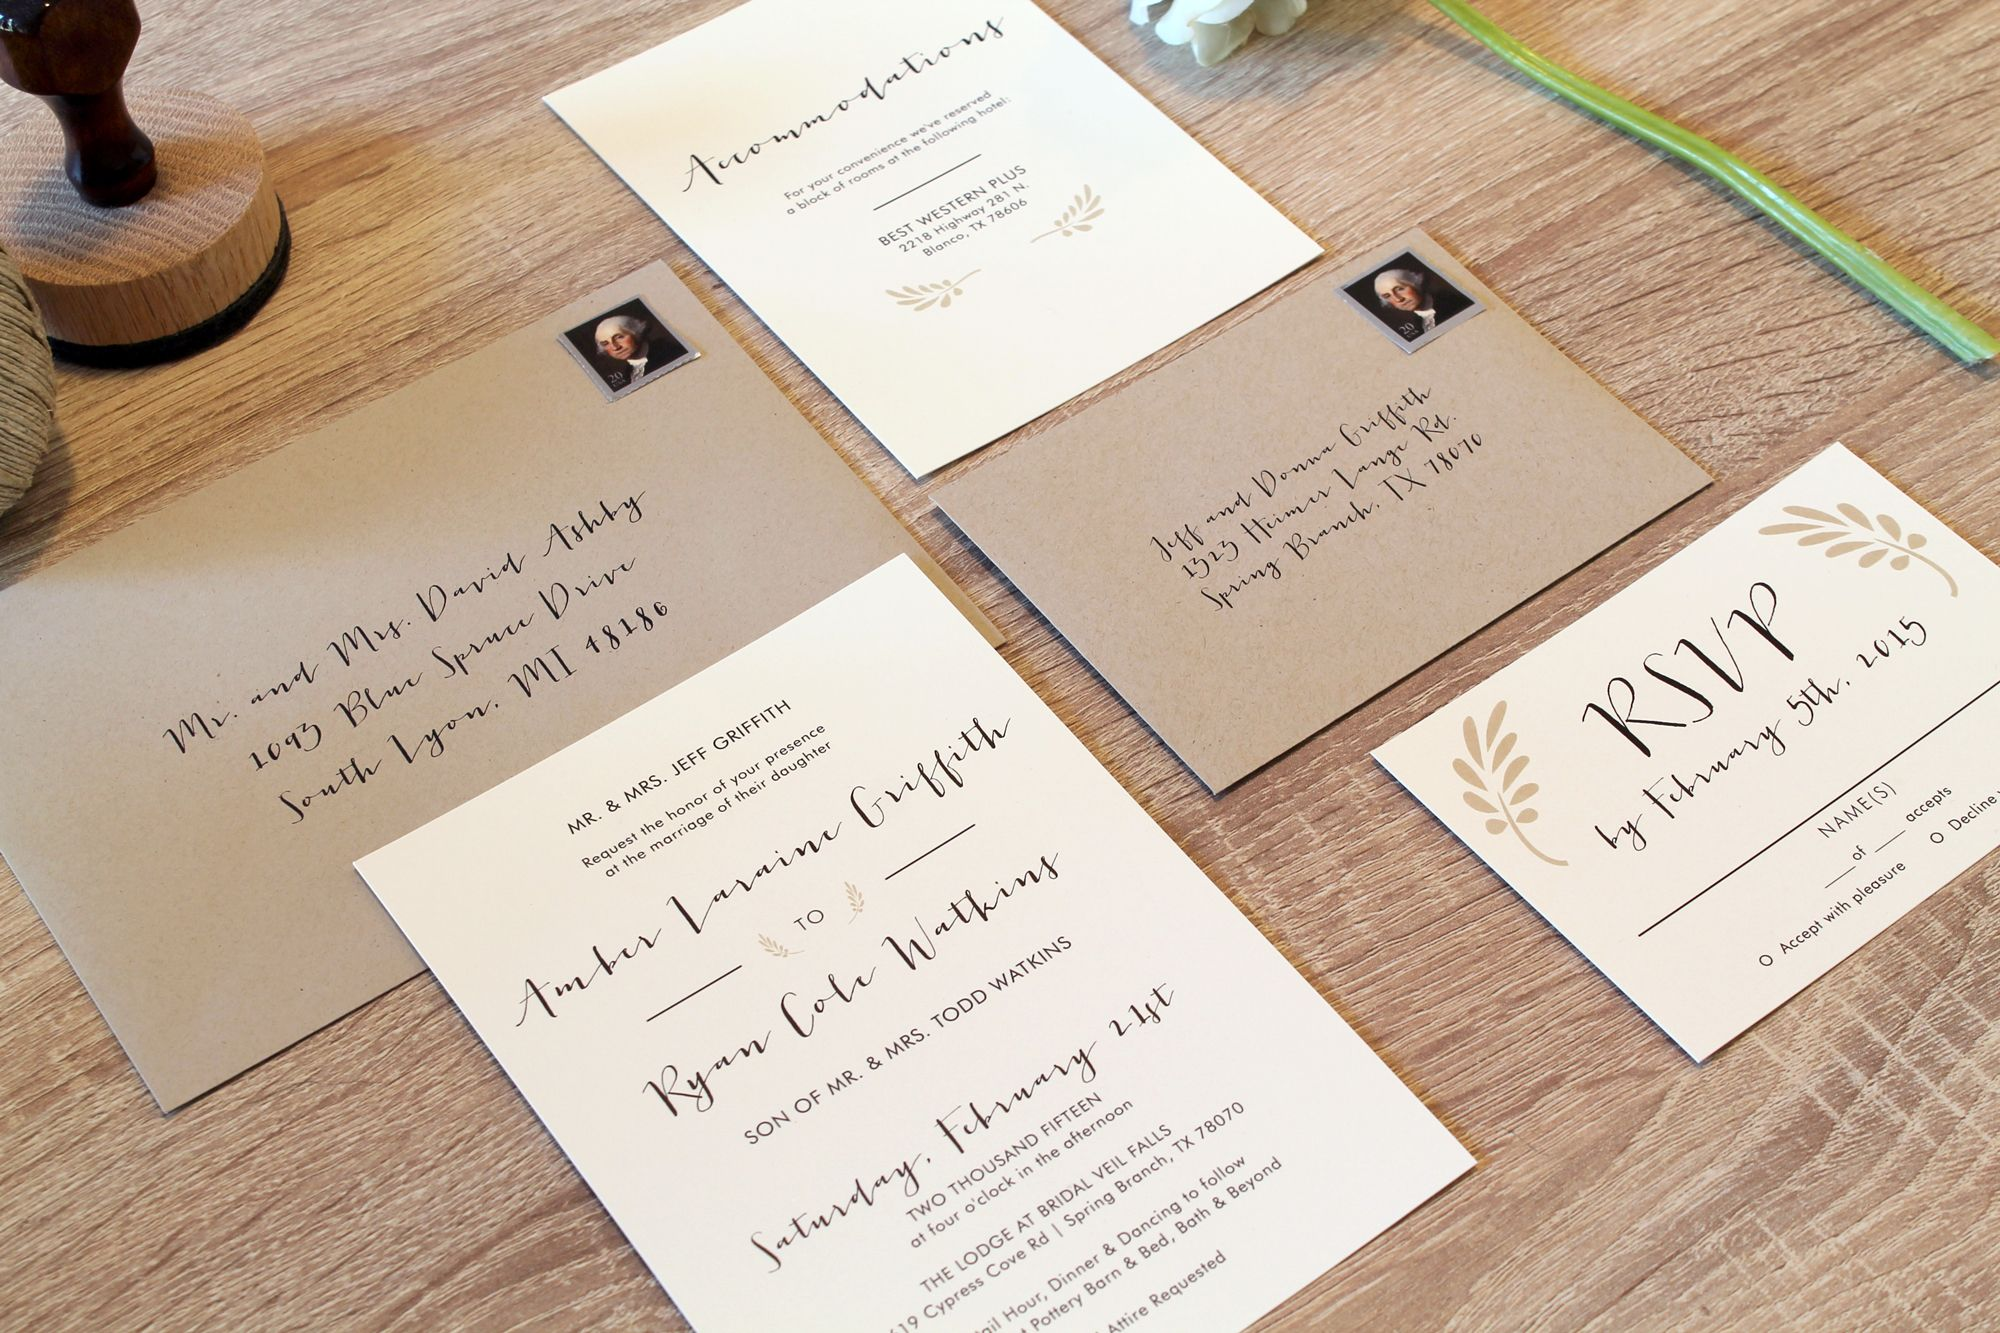 kaart rustic wedding invitation images about Kaart on Pinterest Rustic wedding invitations Simple wedding invitations and Wedding invitations